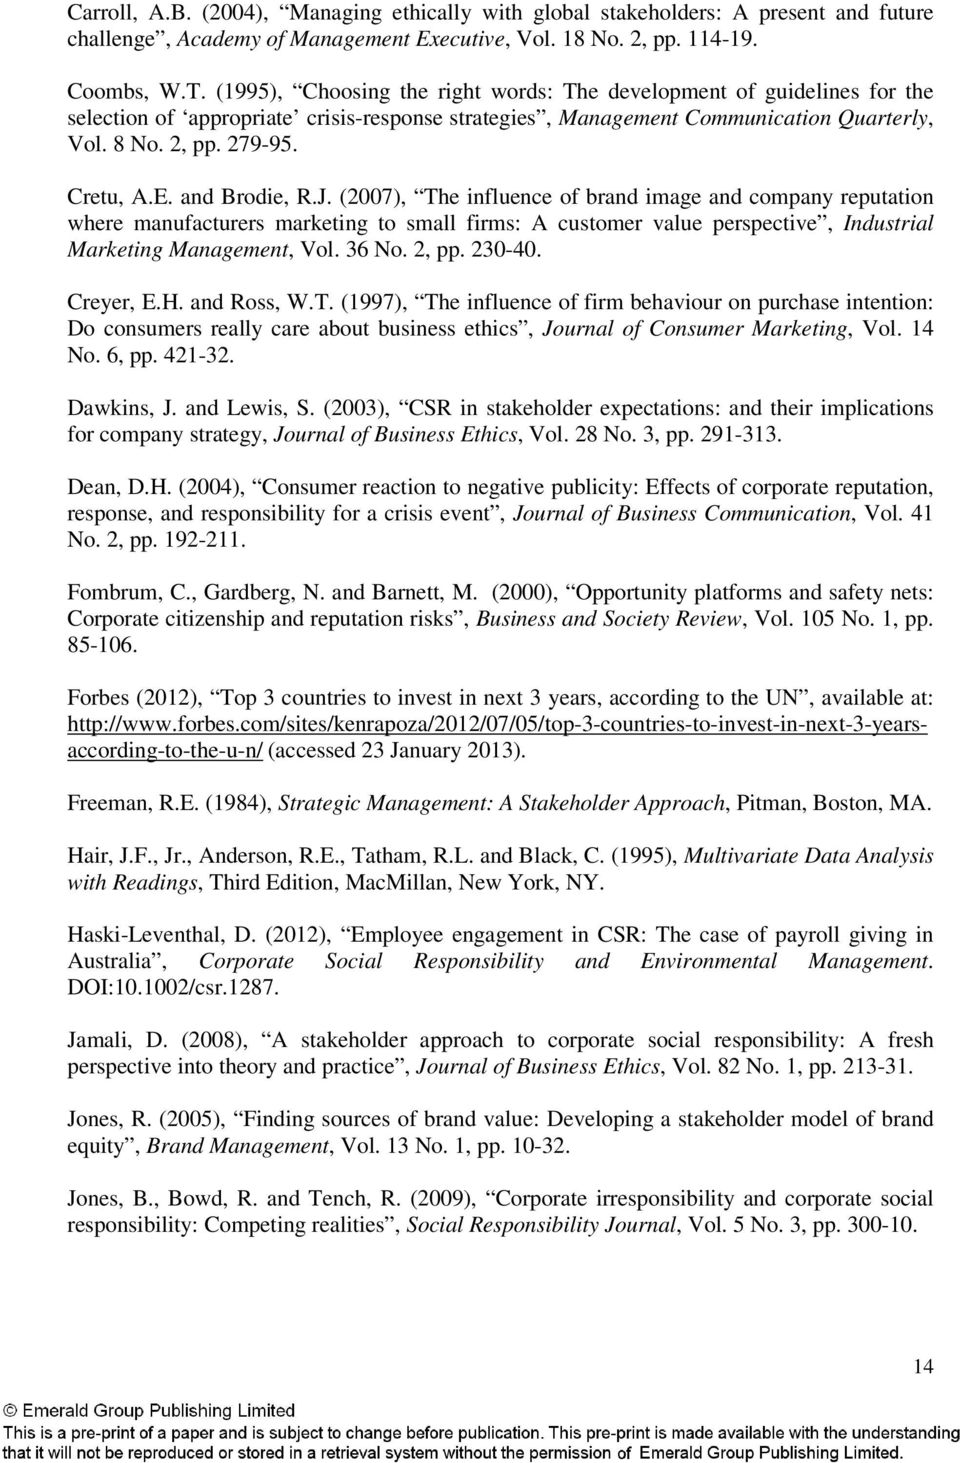 essay for handicraft